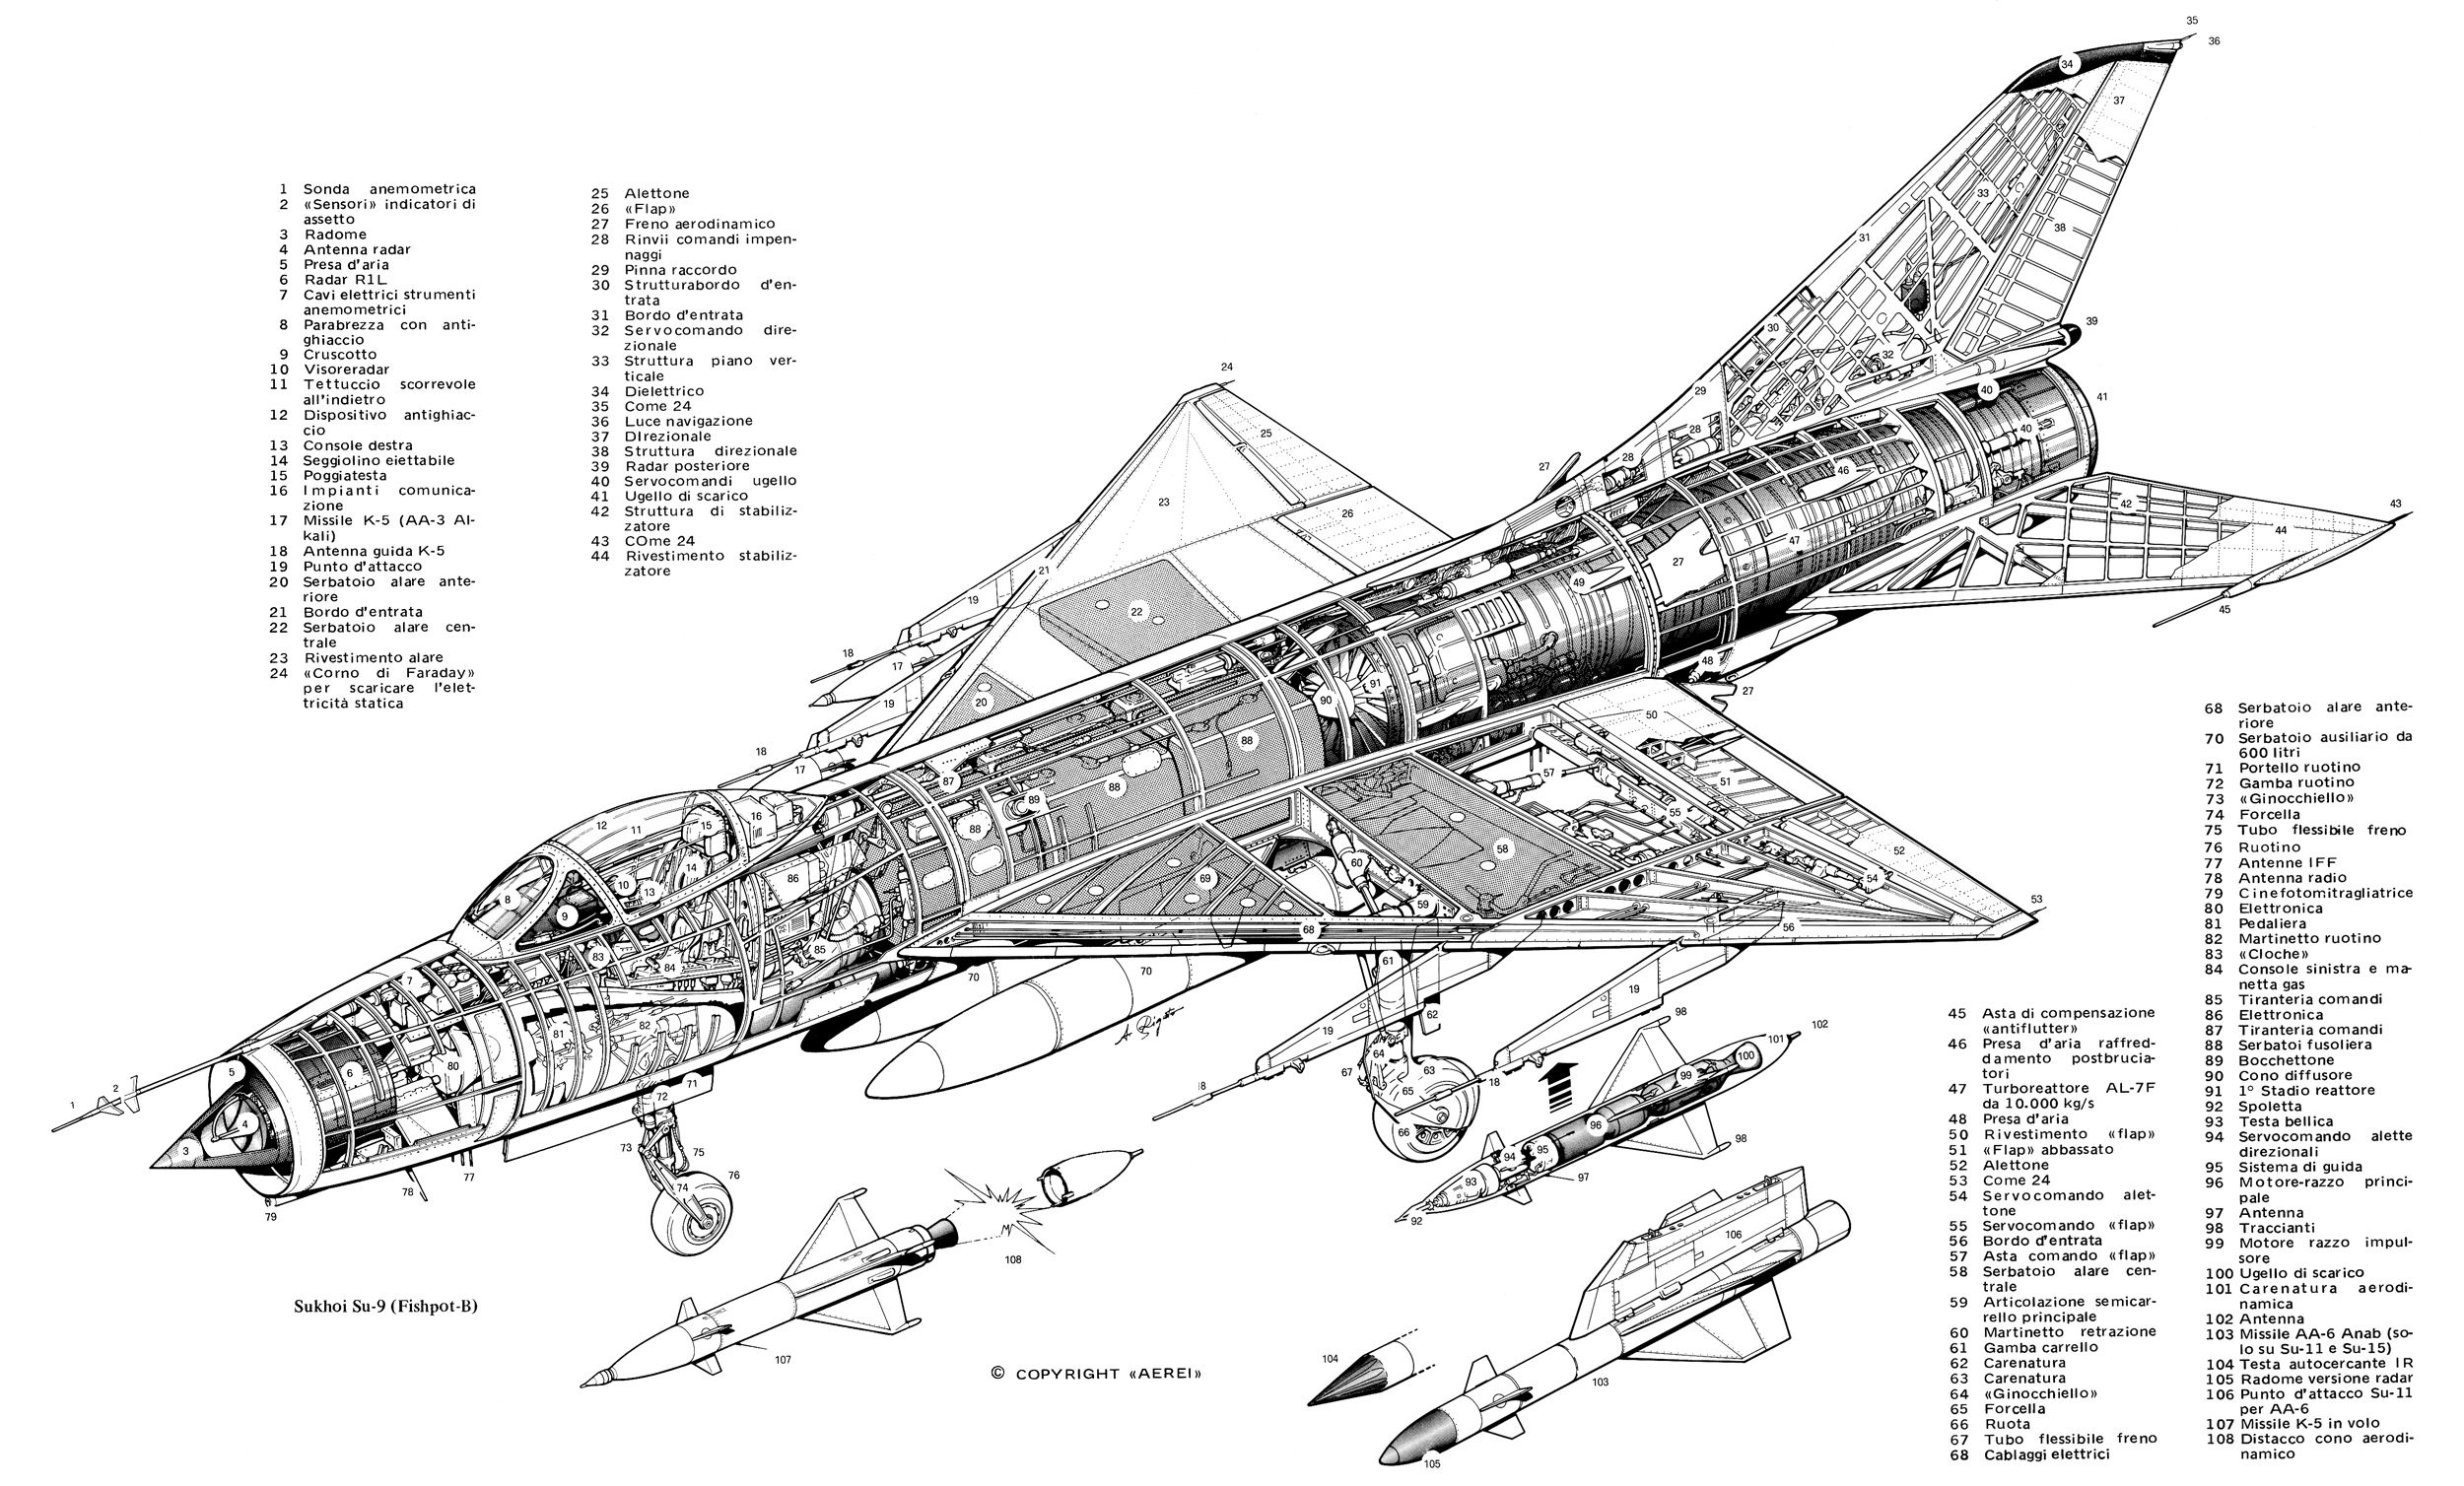 Referencesarlyecho Aviation Sukhoi Su 9